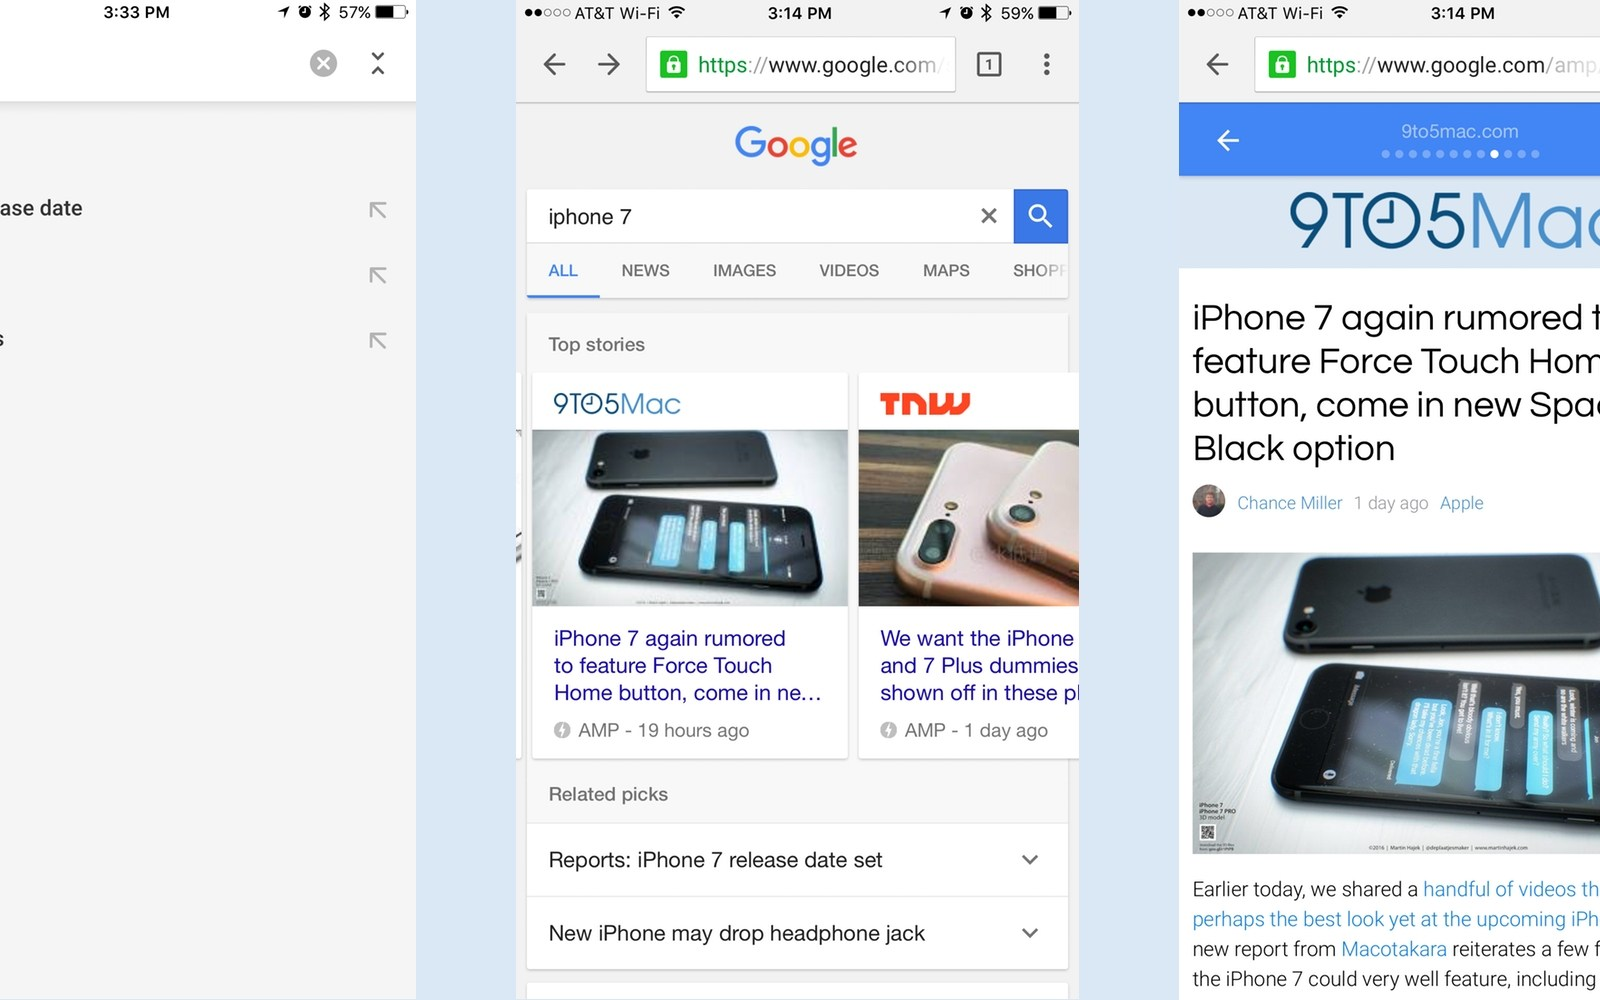 Chrome for iOS now highlights AMP articles for instant page loading